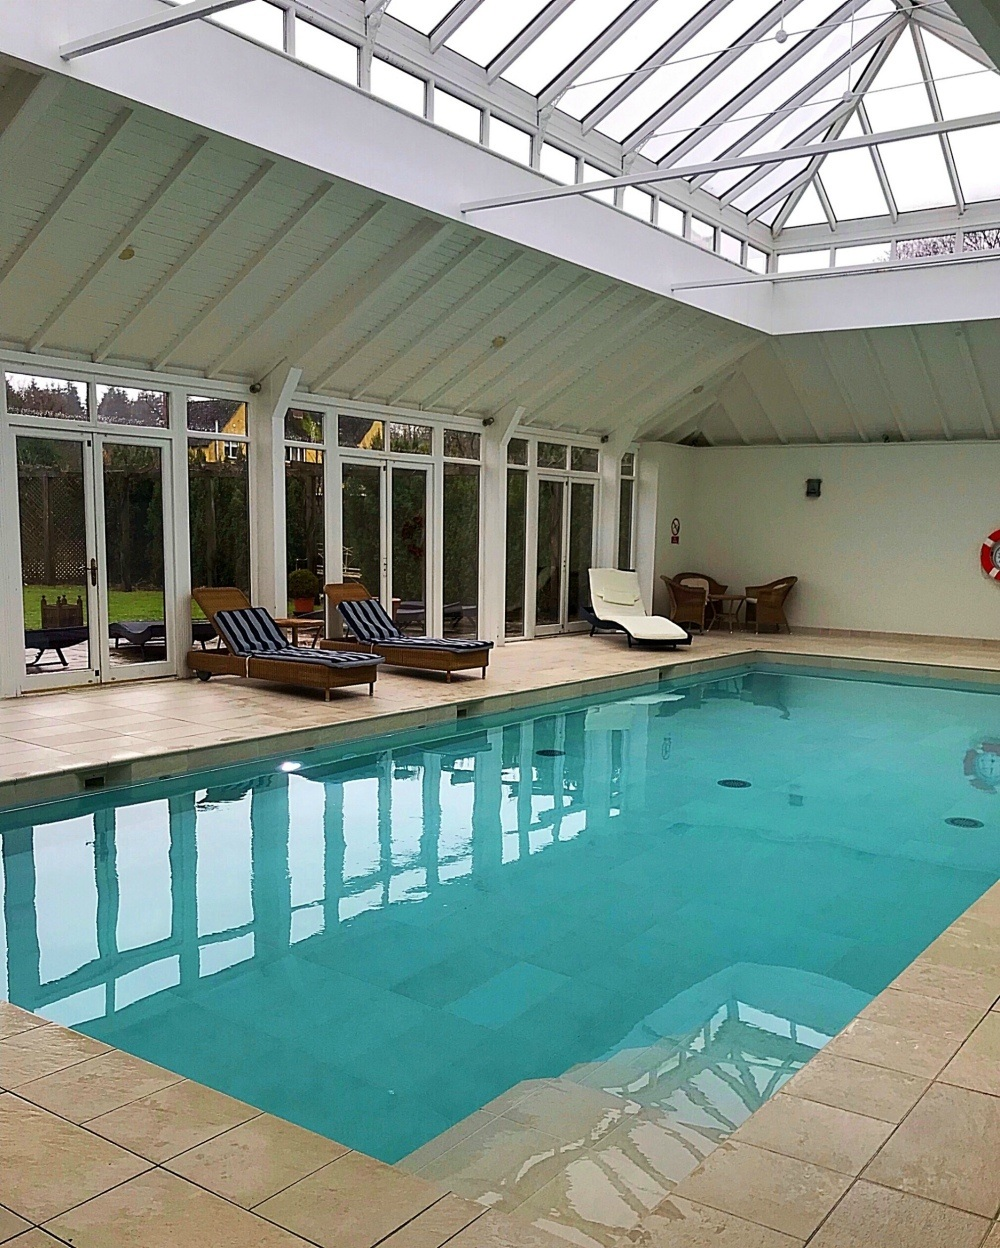 Swimming Pool at Bruern Cottages - Photo Heatheronhertravels.com